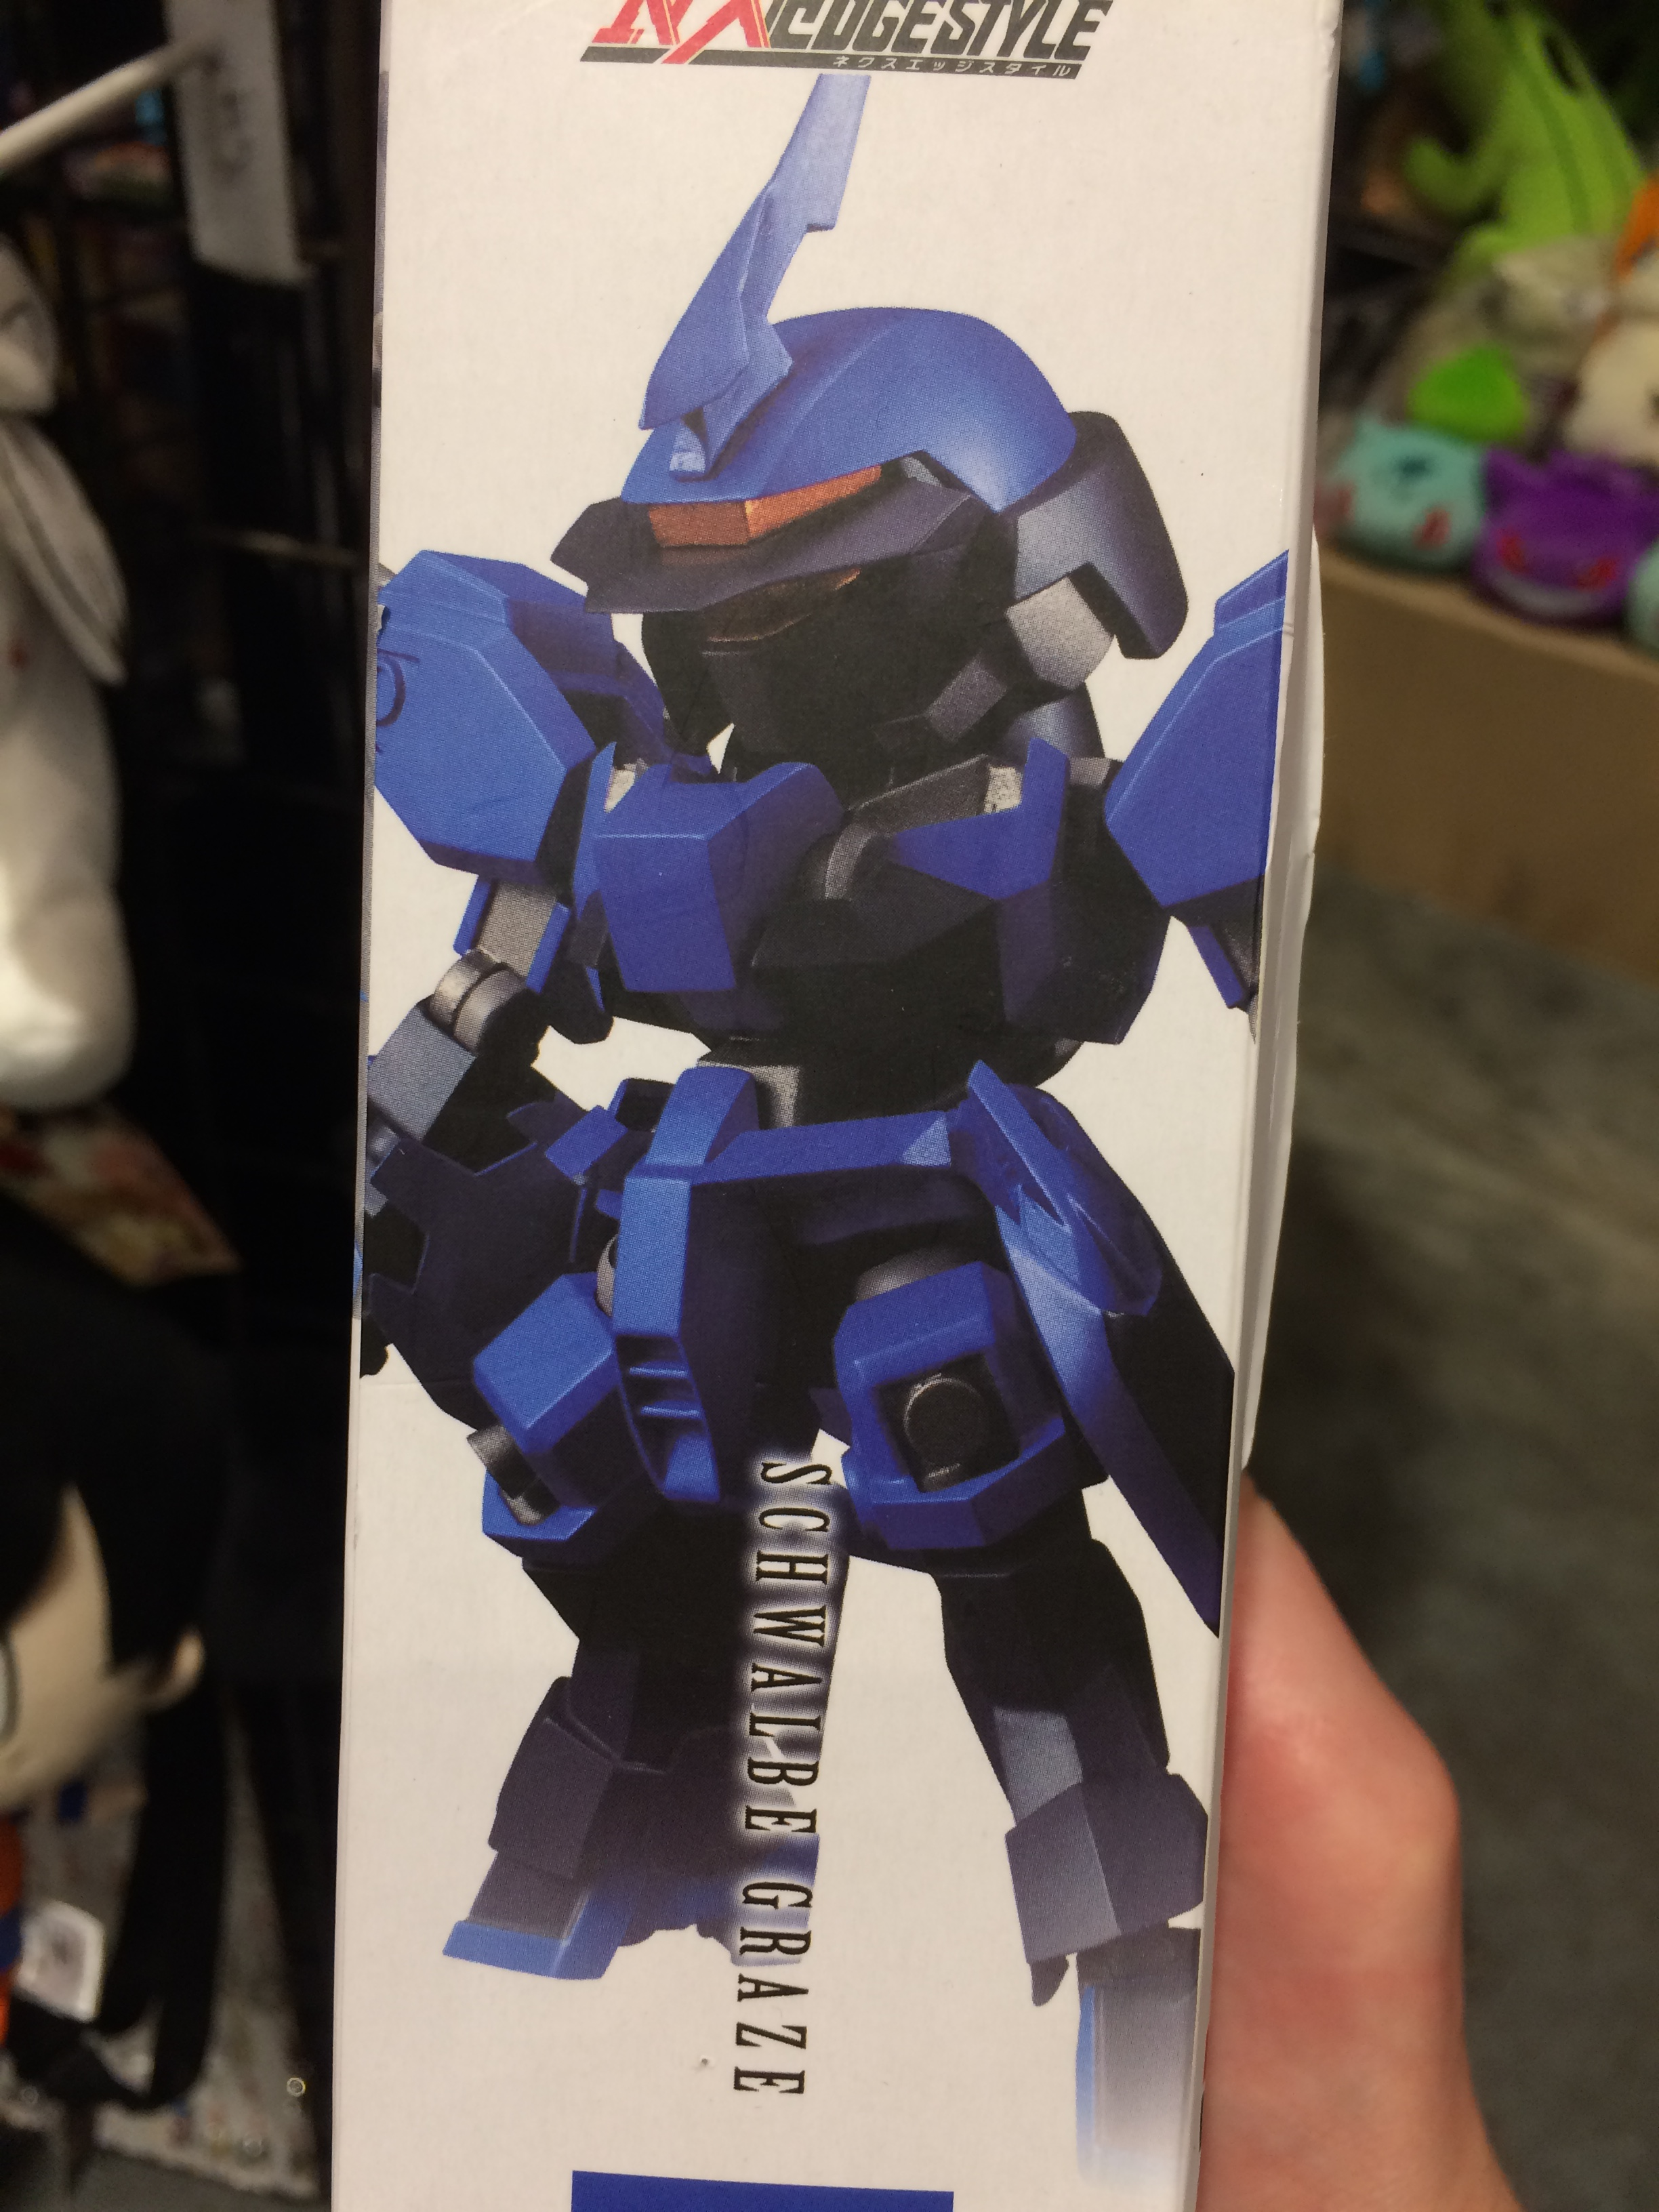 I was quite taken by this tiny Gunpla, though